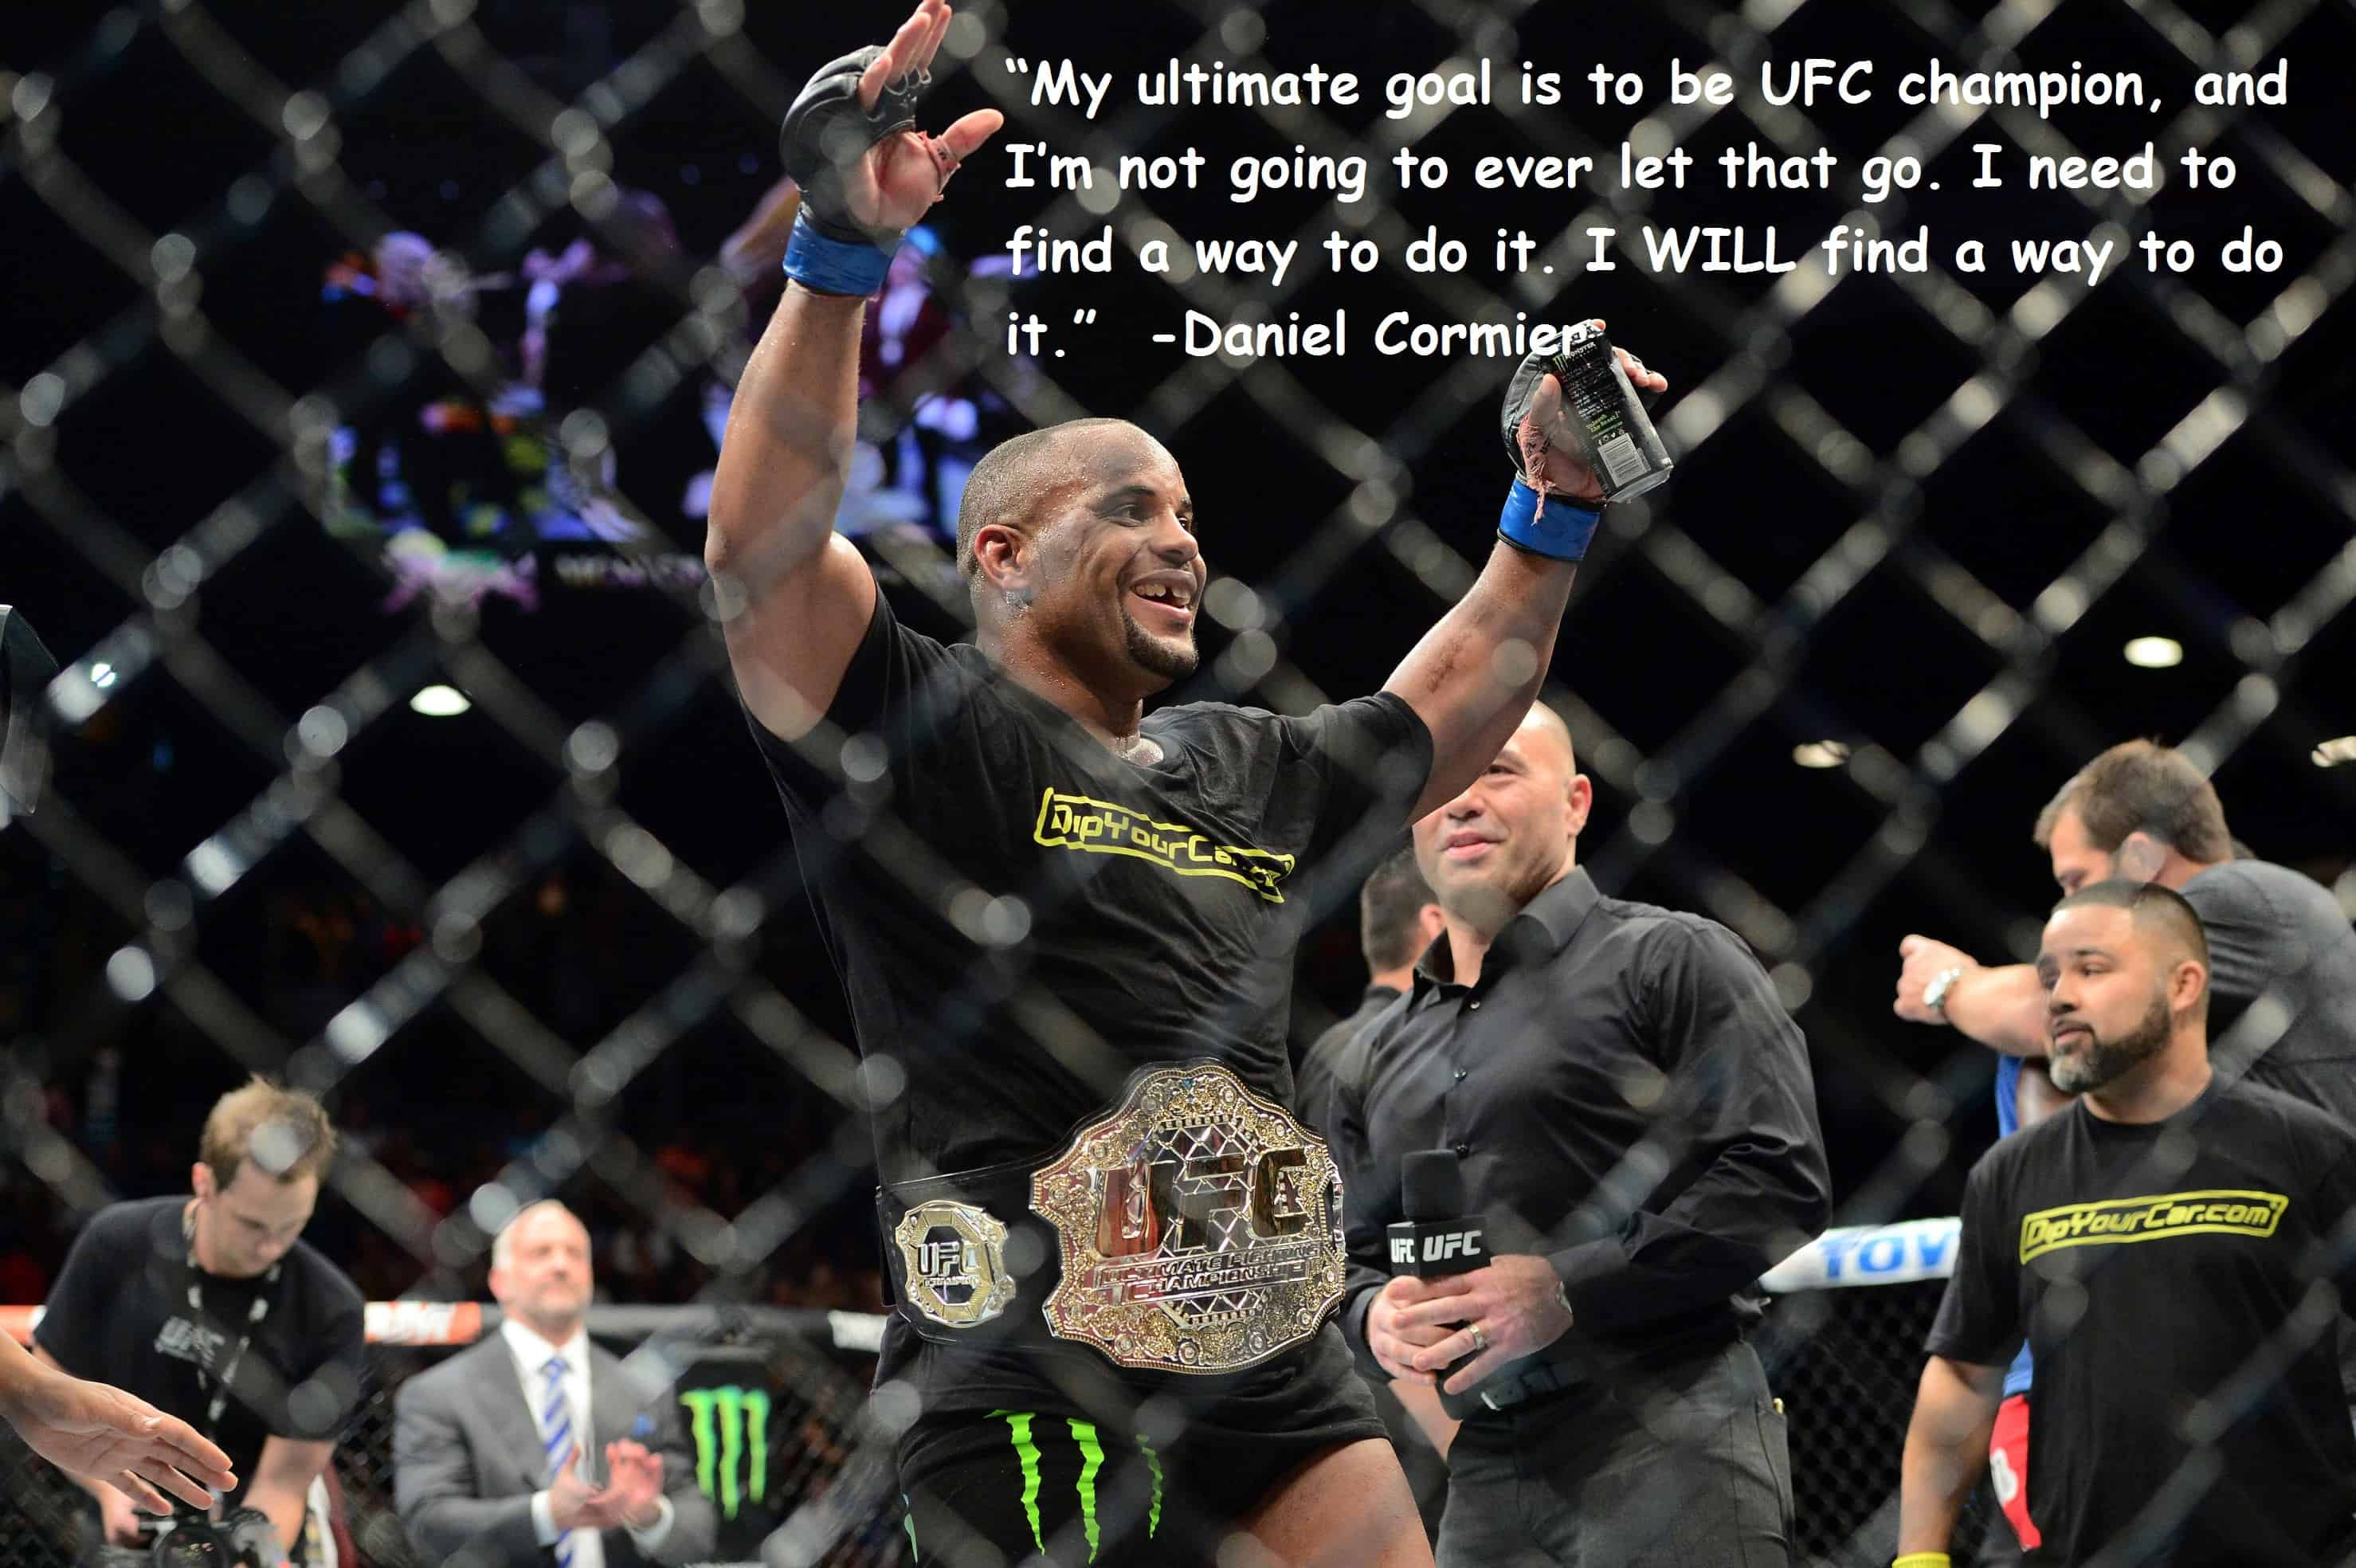 May 23, 2015; Las Vegas, NV, USA;  Daniel Cormier  celebrates after defeating Anthony Johnson (not pictured) in their light heavyweight championship bout during UFC 187 at MGM Grand Garden Arena. Cormier won via third round TKO. Mandatory Credit: Joe Camporeale-USA TODAY Sports